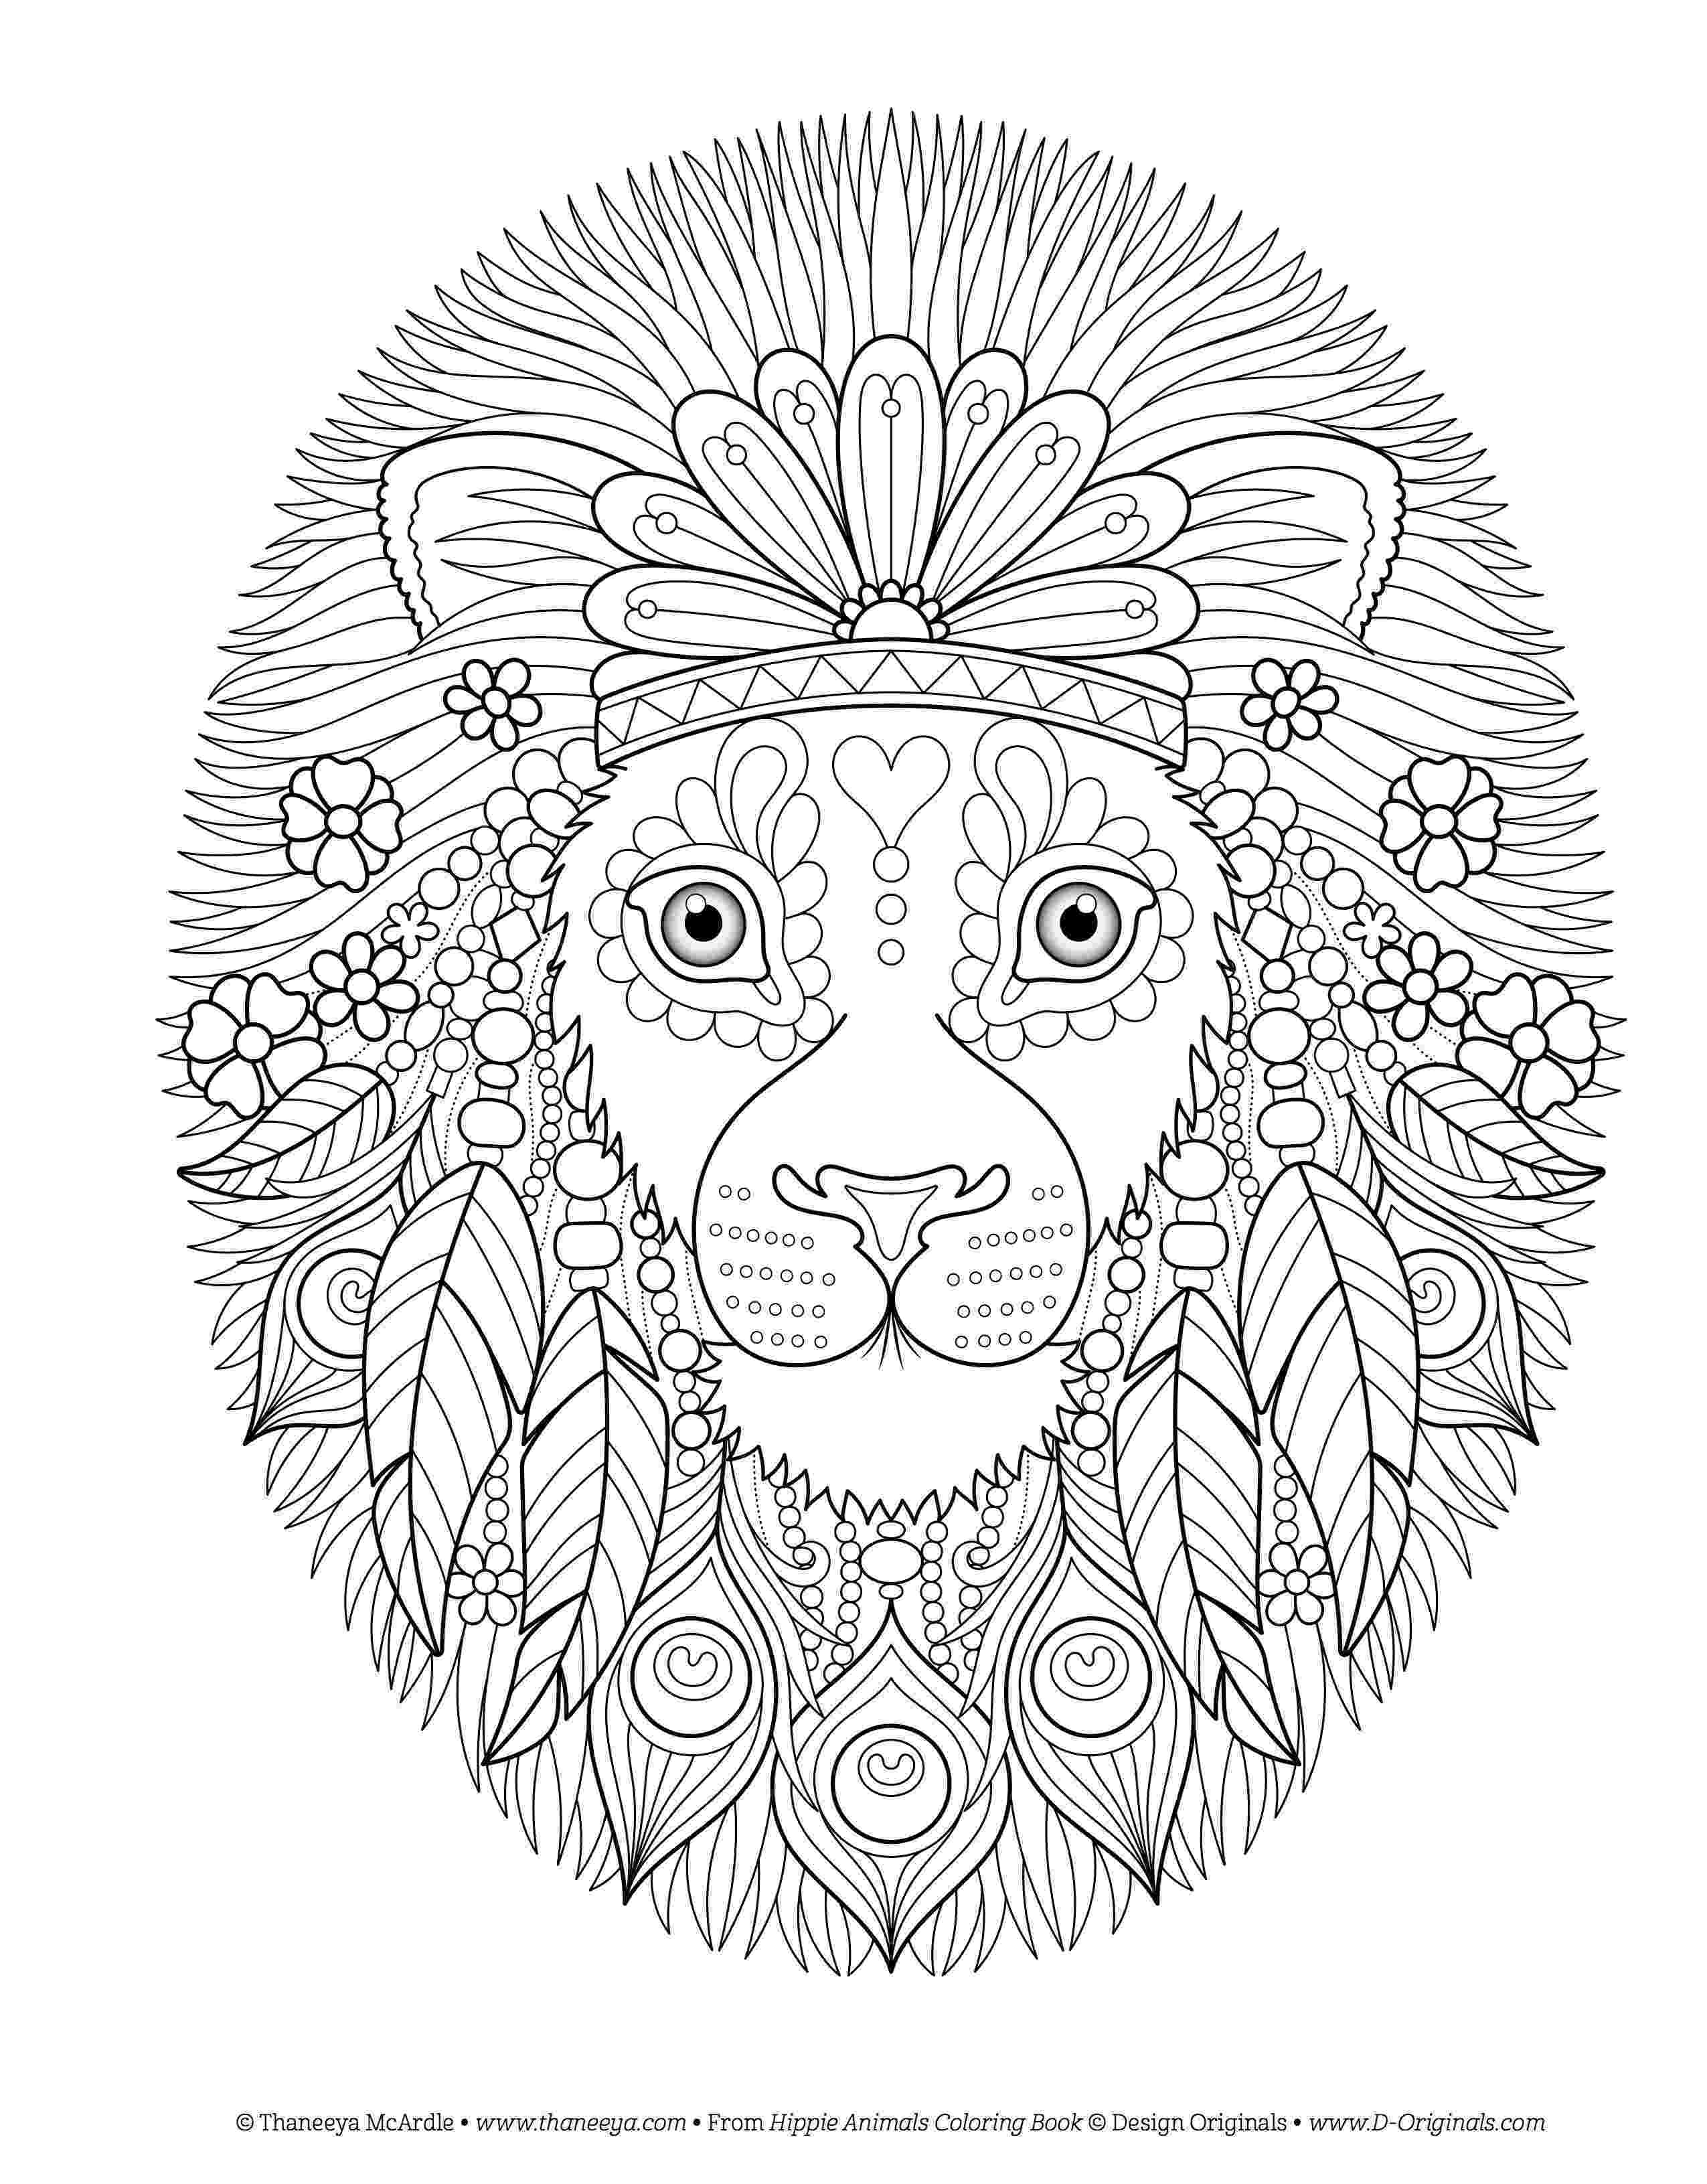 hippie coloring sheets hippie animals coloring book by thaneeya mcardle coloring hippie sheets